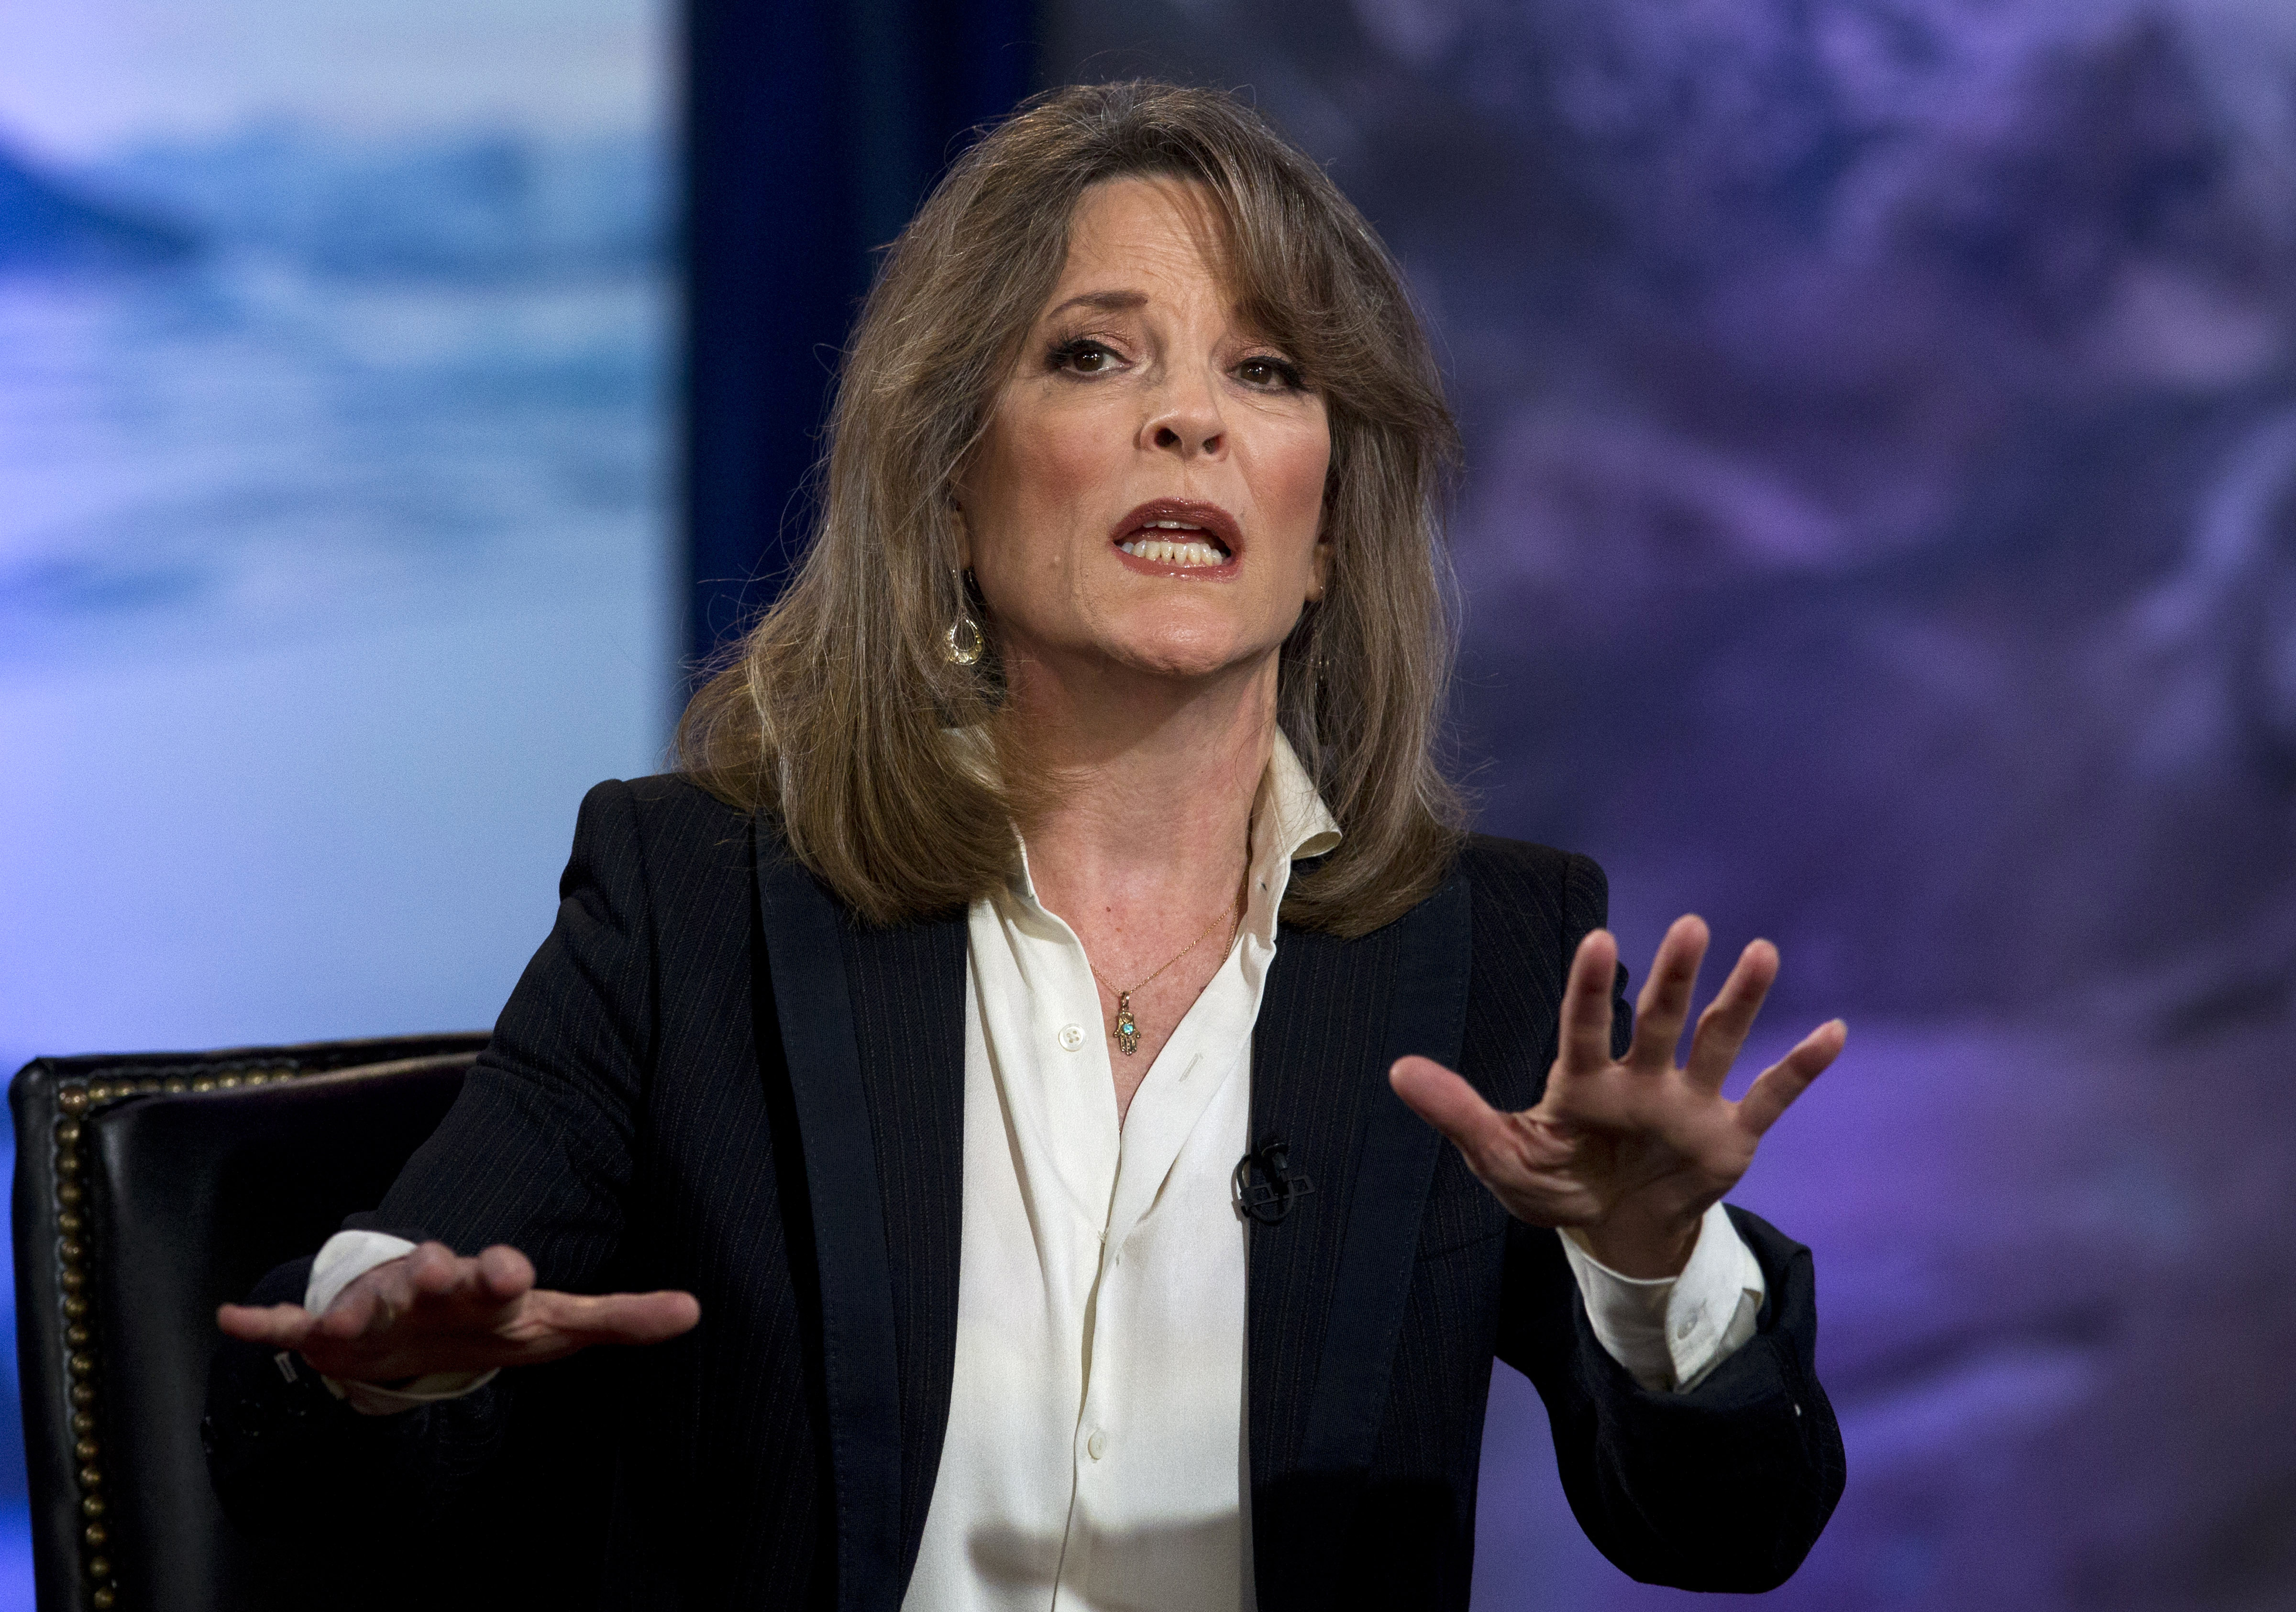 Westlake Legal Group AP19262622255095 Marianne Williamson rules out third party run, vows to get behind Democratic nominee Victor Garcia fox-news/shows/the-story fox-news/politics/elections/democrats fox-news/politics/elections fox-news/person/marianne-williamson fox-news/media/fox-news-flash fox-news/media fox news fnc/media fnc f0c571e2-f0ae-5835-8d6d-a80fd6fc278e article